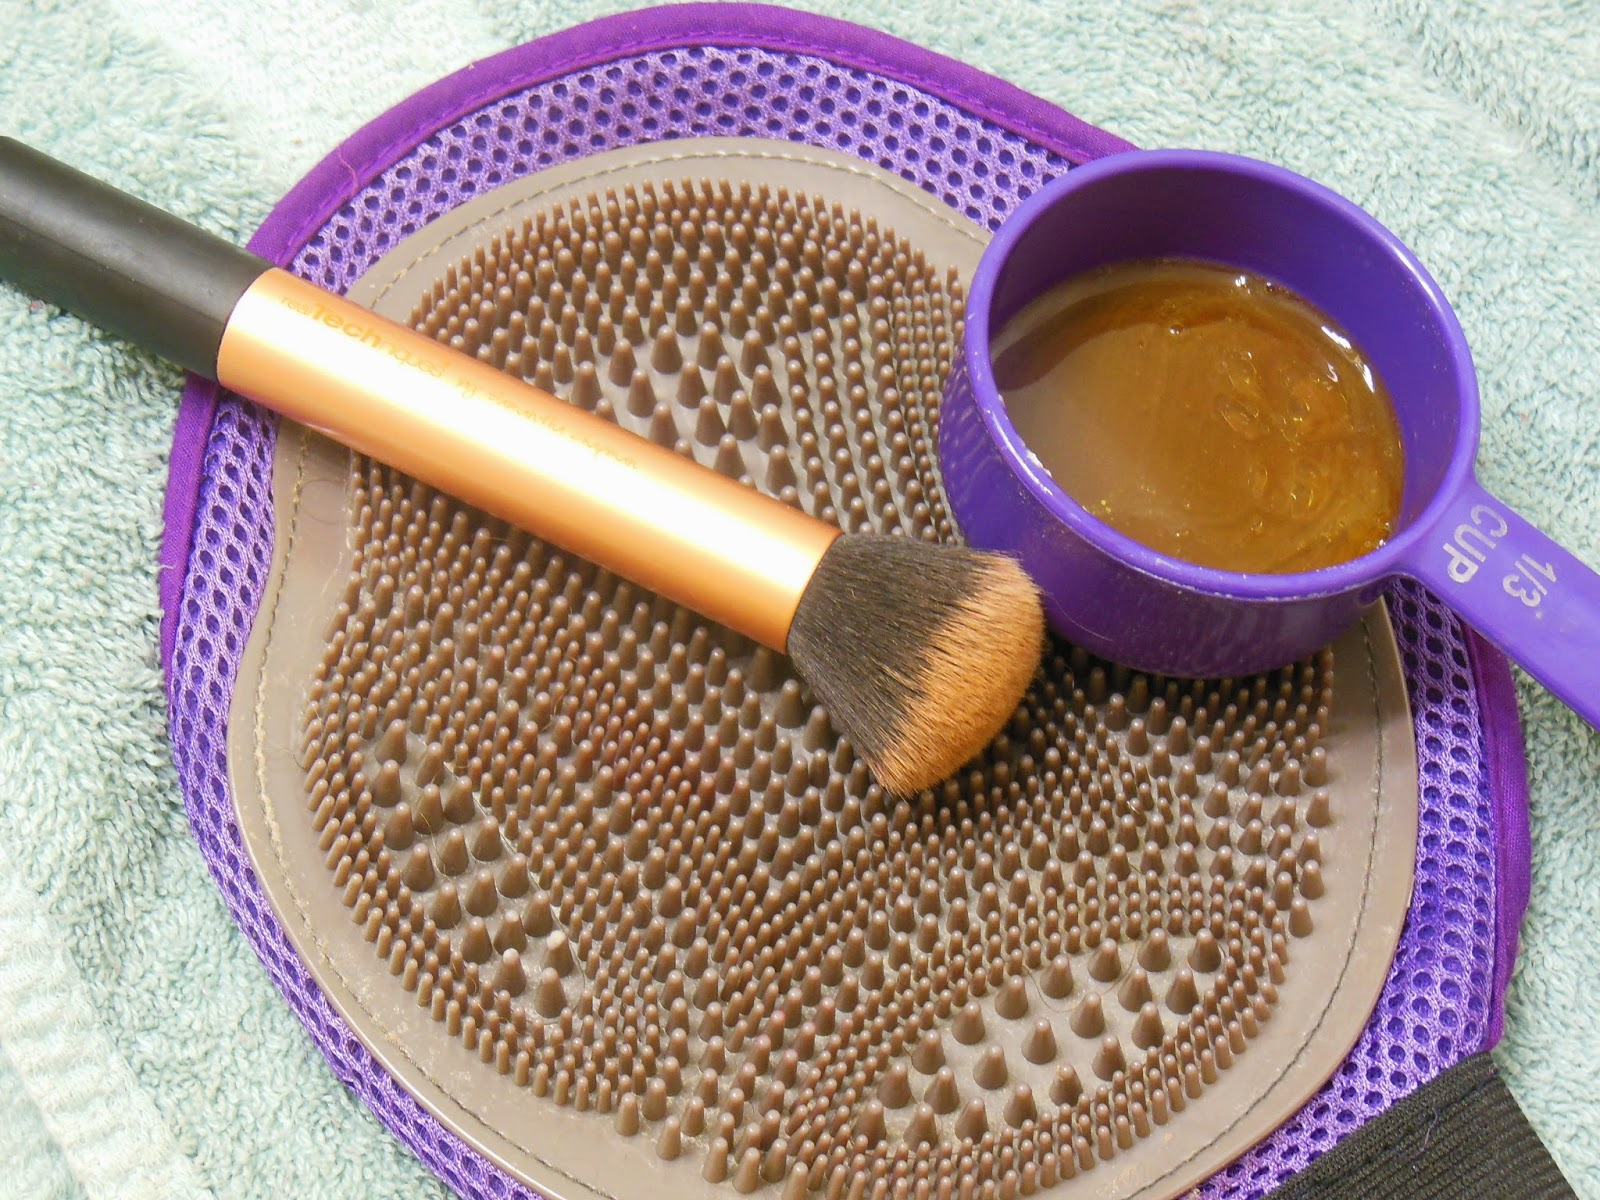 clean makeup brushes with olive oil, clean makeup brushes with shampoo, How to clean makeup brushes at home